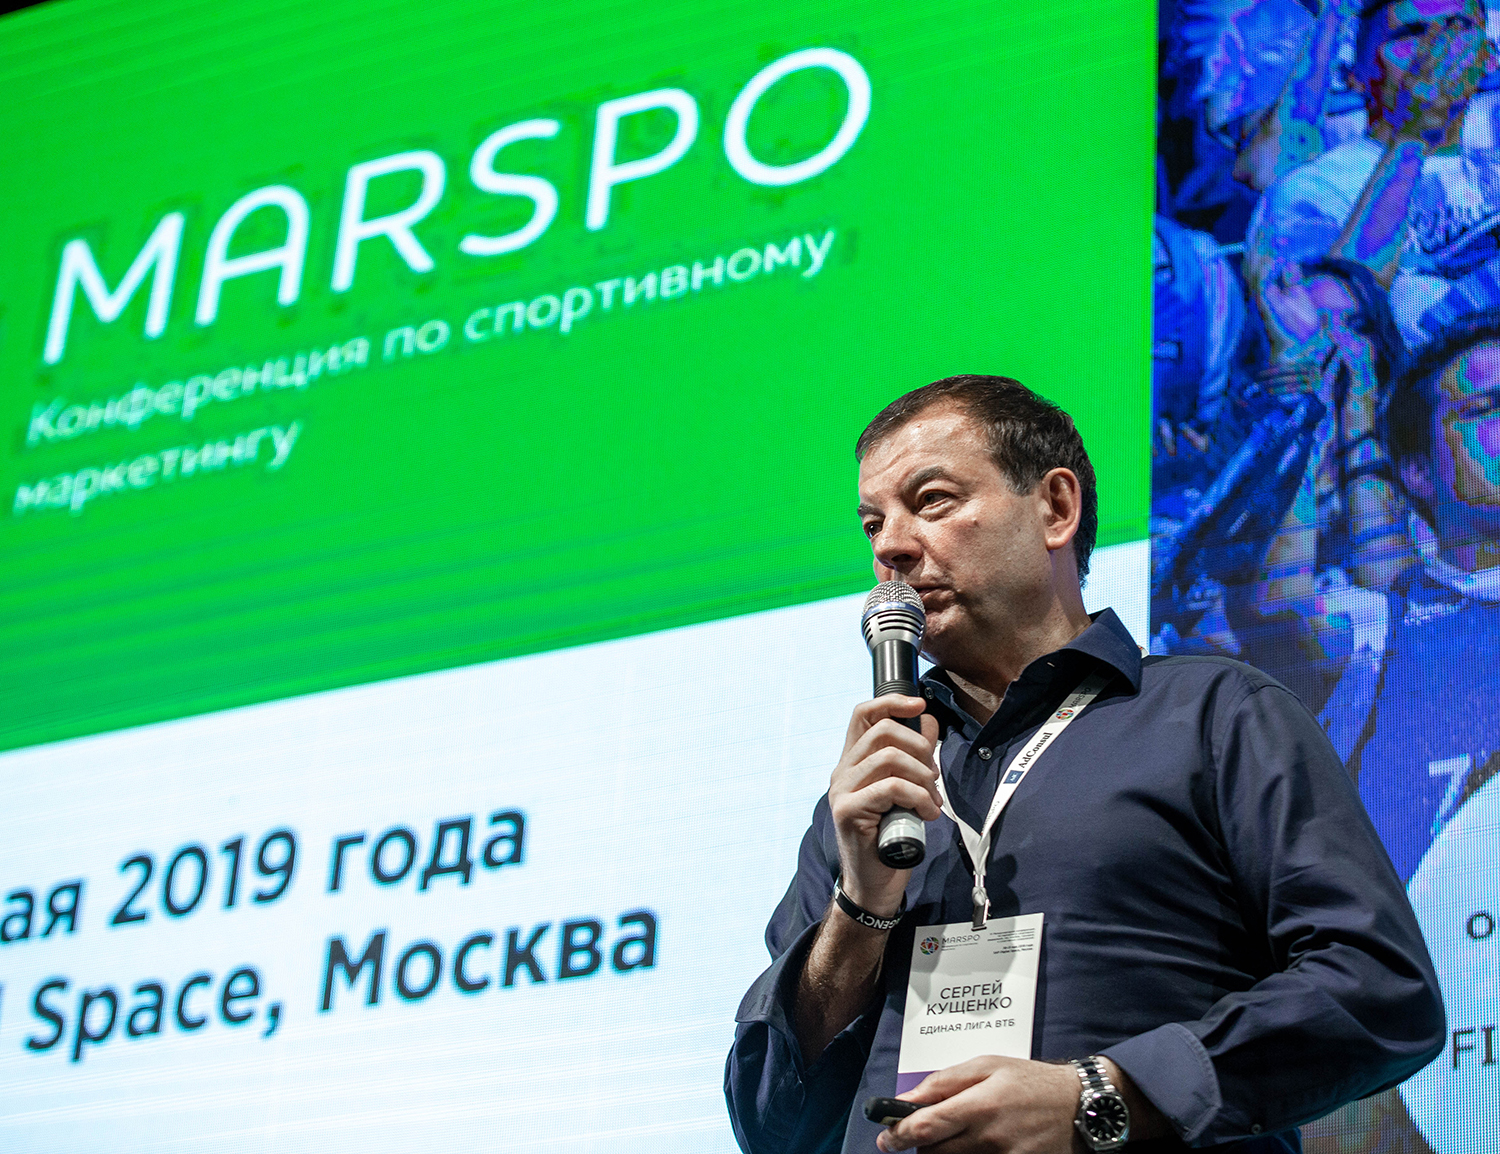 Sergey Kushchenko Presents At MarSpo Conference